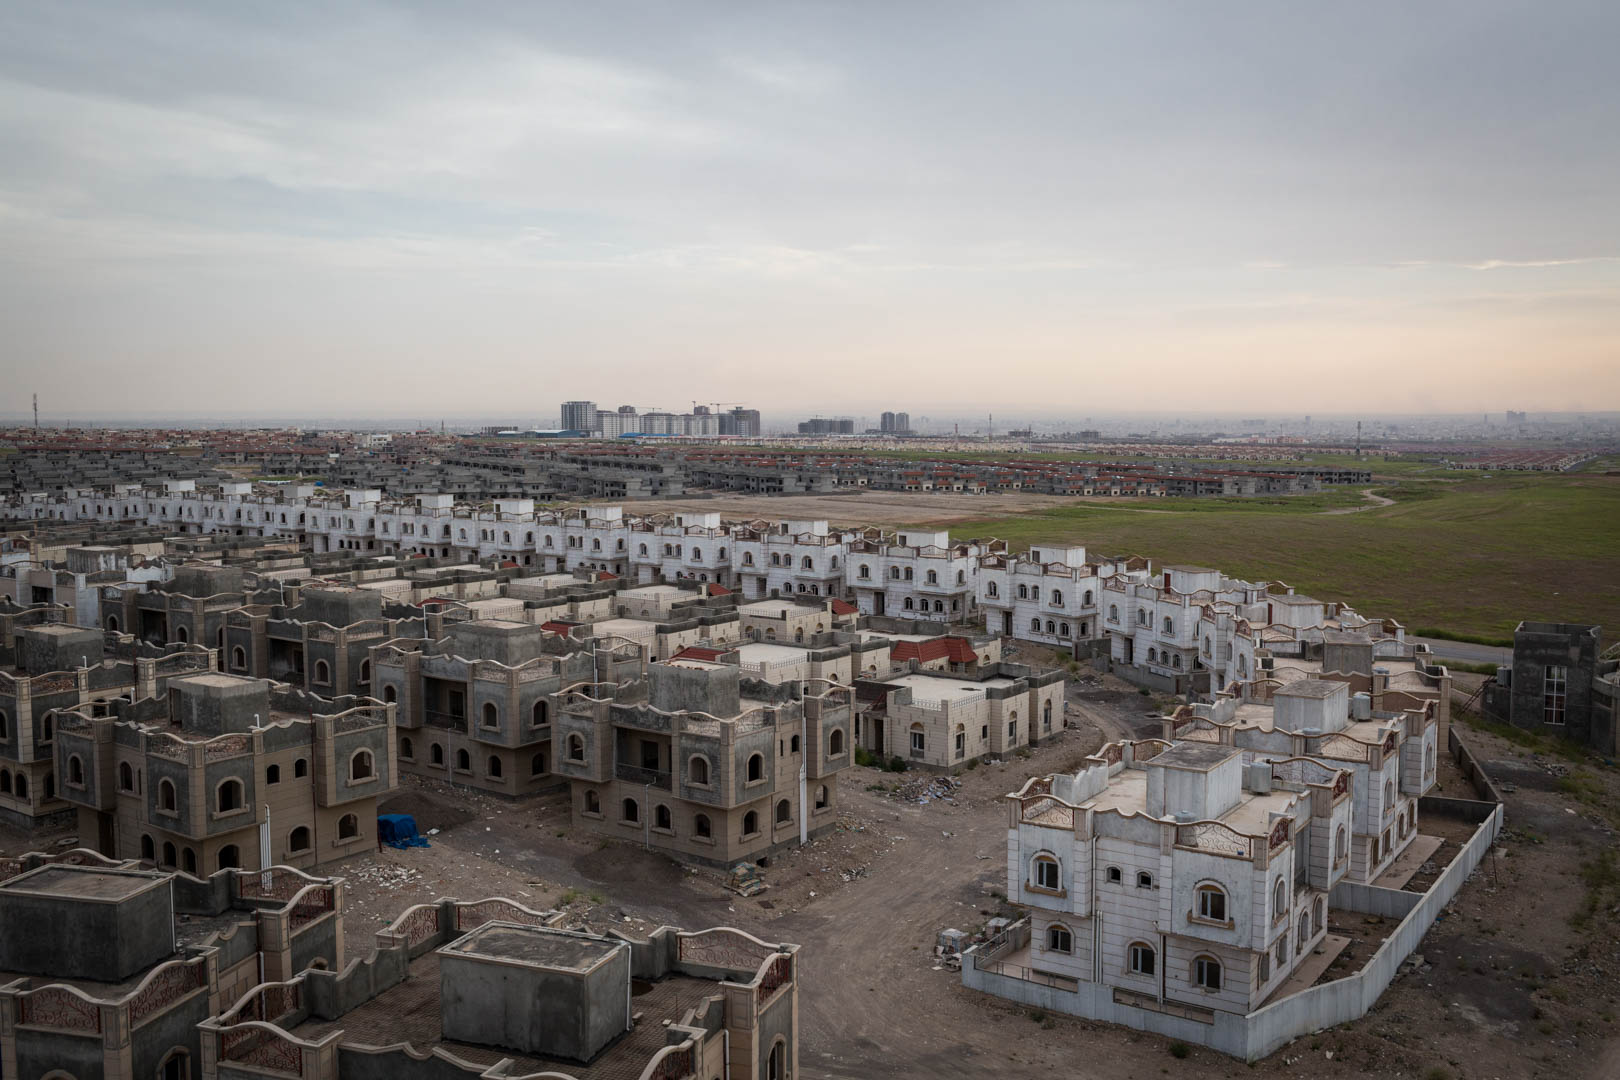 An unfinished real estate housing compound can be seen outside of Erbil. After Islamic State took Mosul and a lot of Kurdish cities, the investor building these houses left the country. The buildings remained unfinished, but are used by German and coalition forces to train Kurdish Peshmerga in urban warfare.